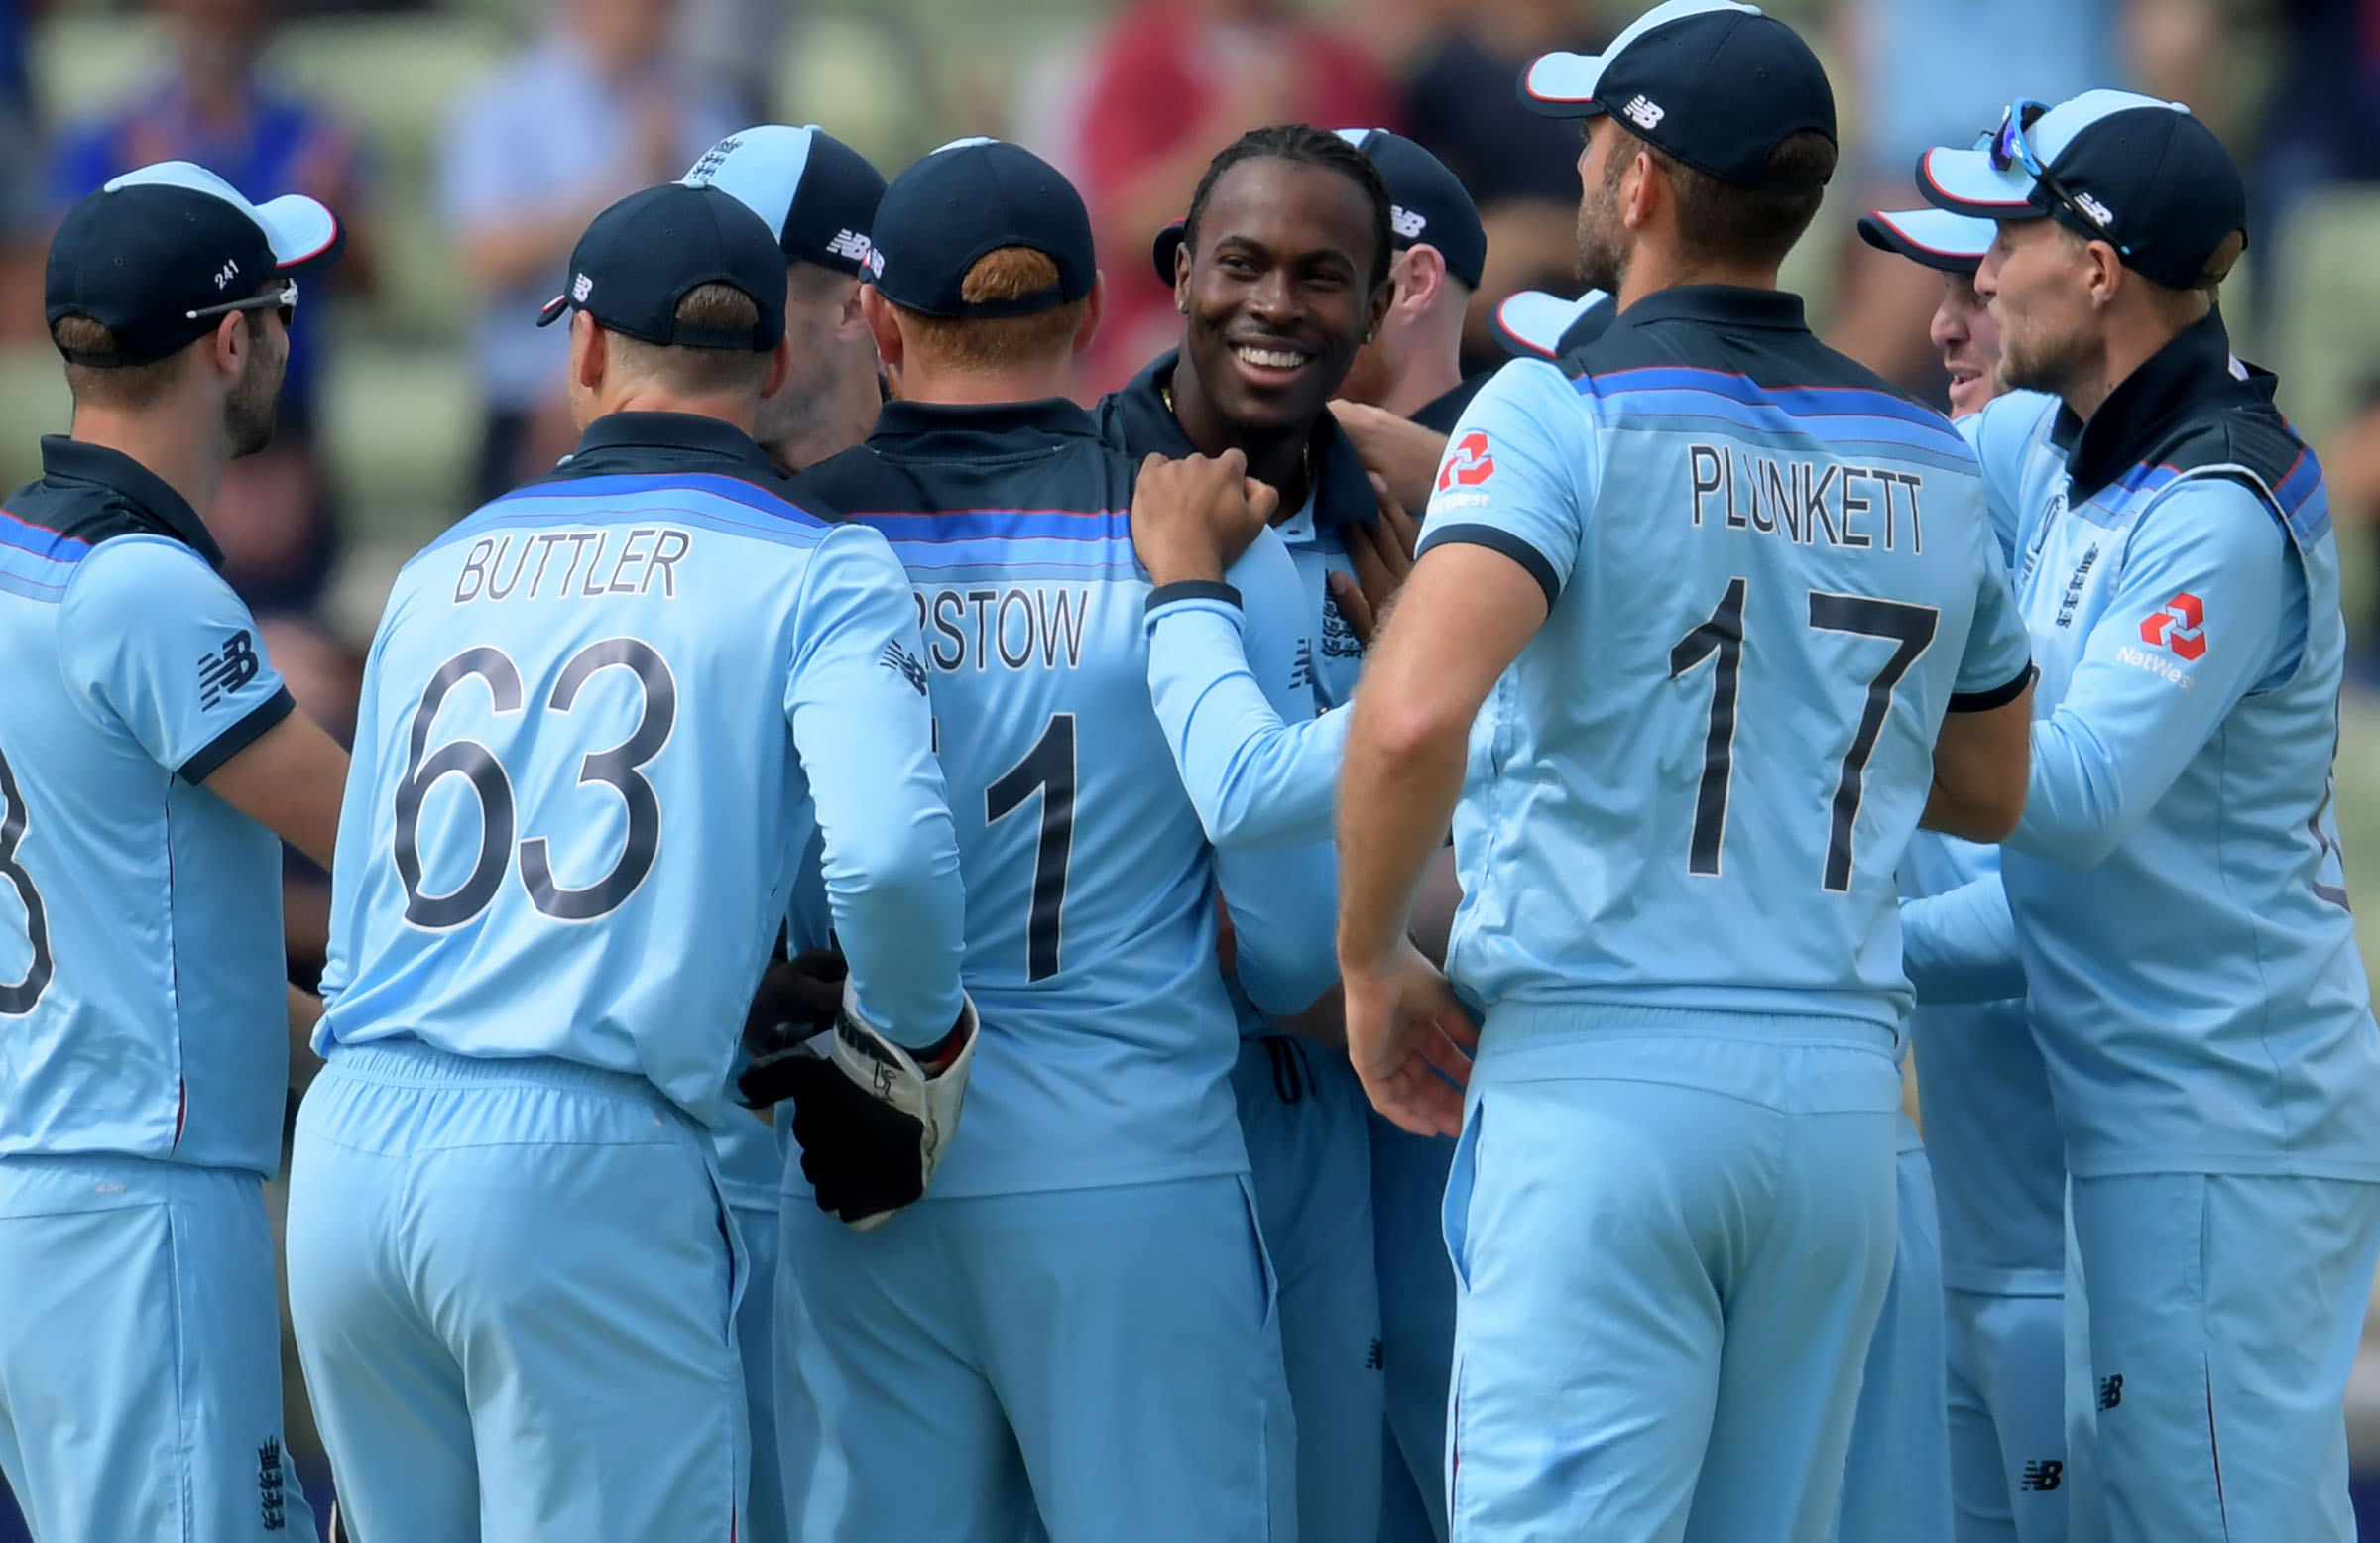 England on verge of World Cup greatness, says Waugh